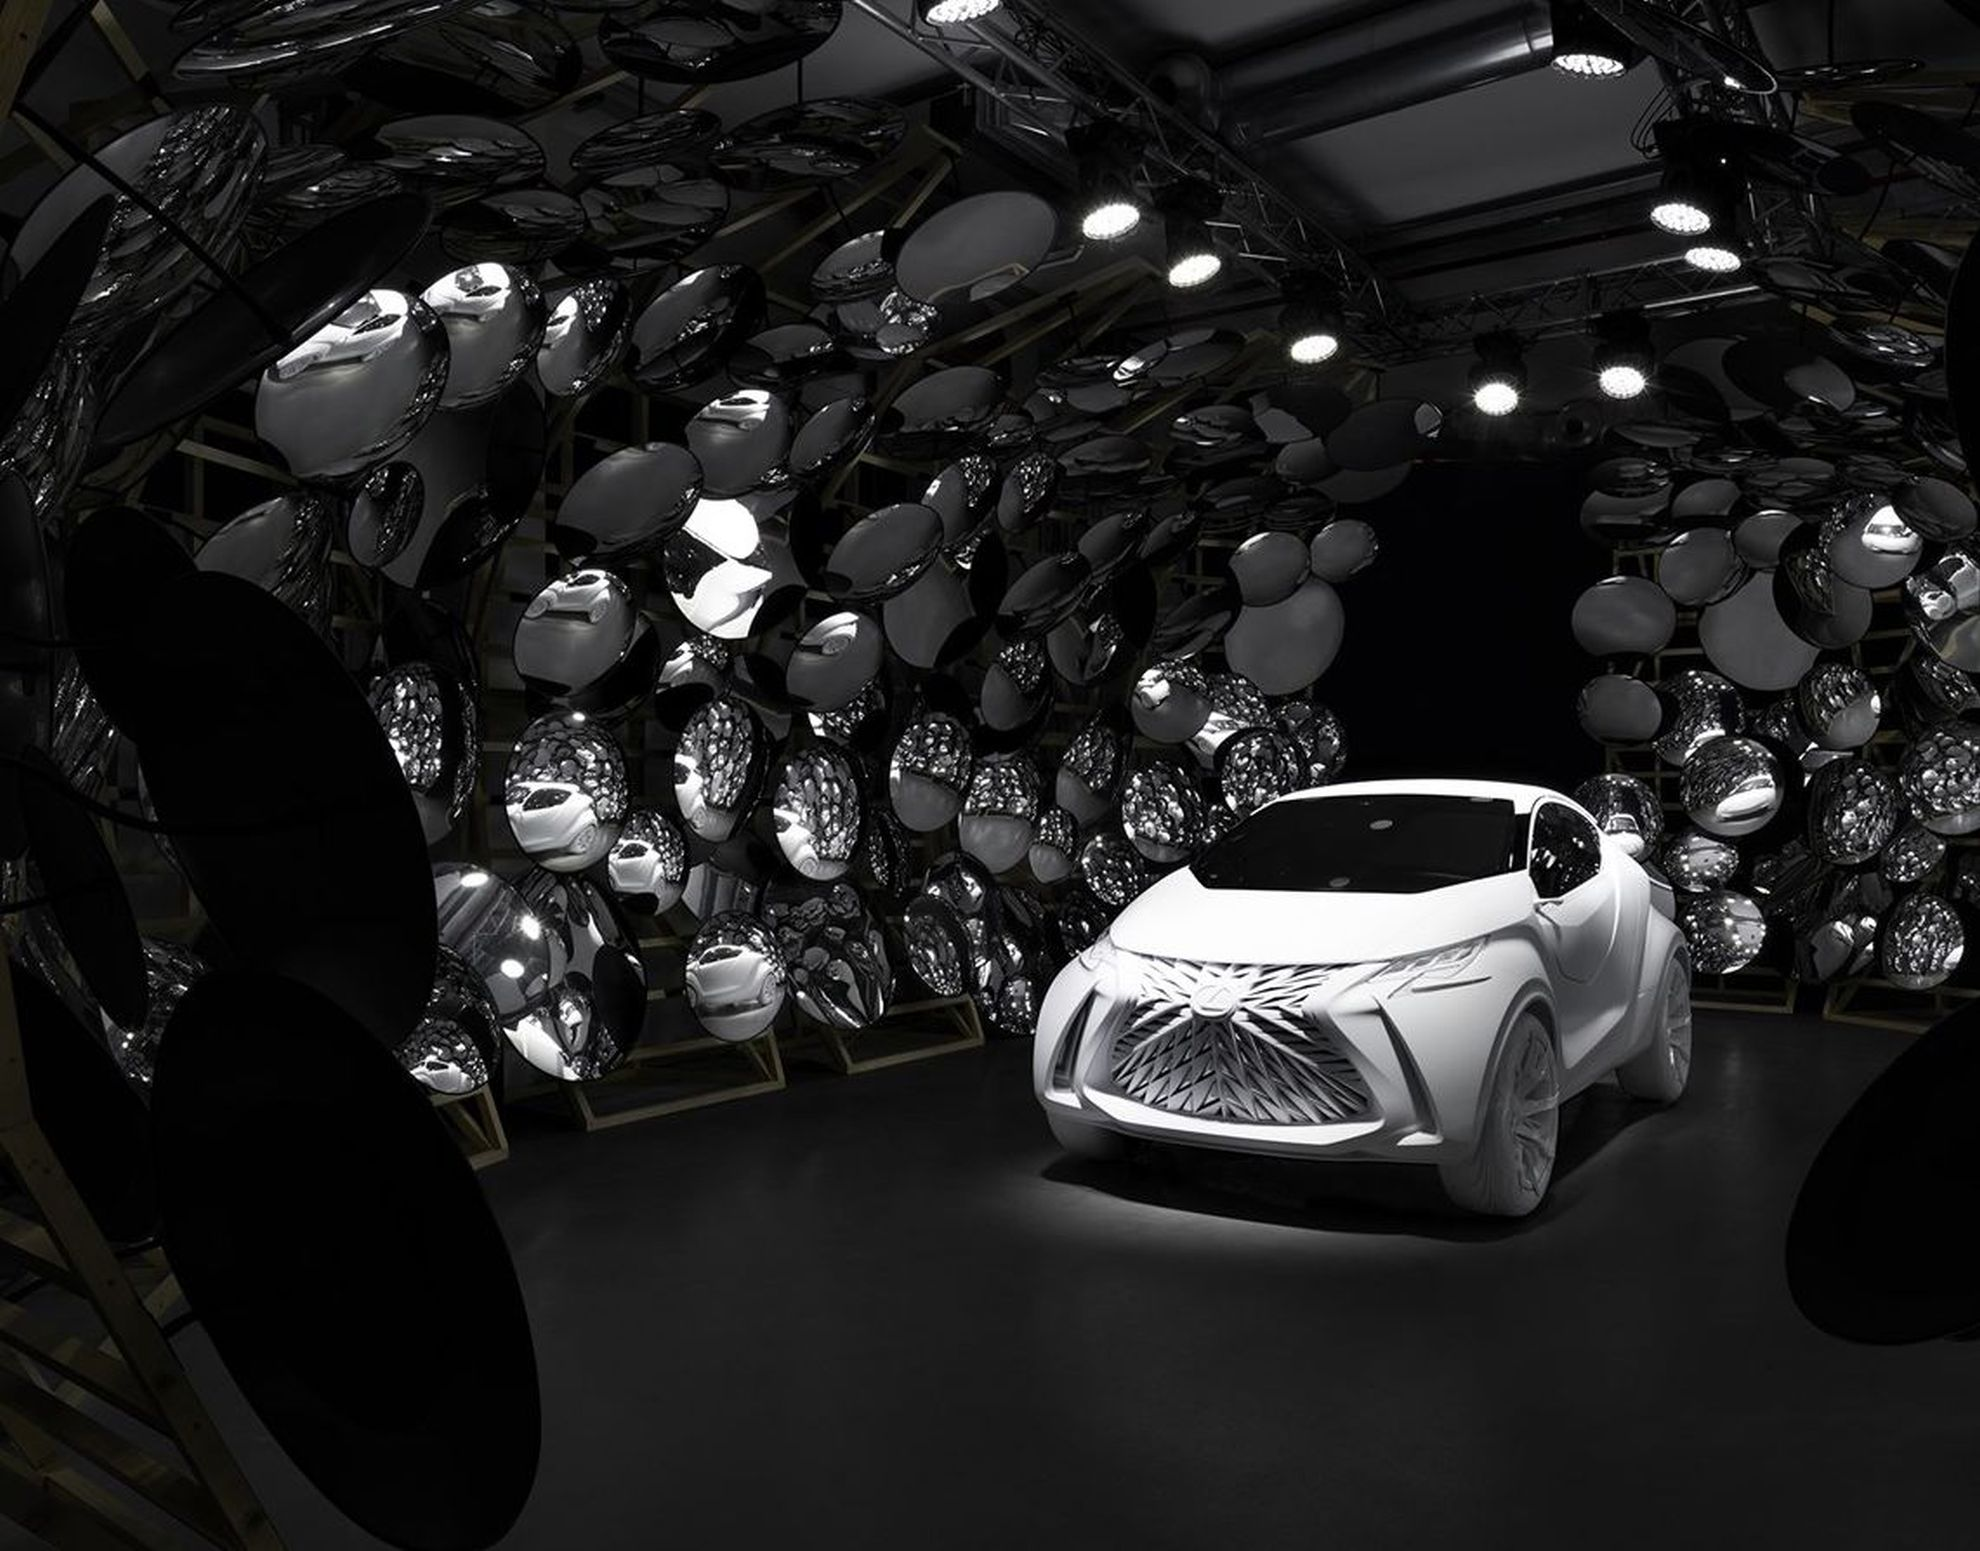 clothing-design-wins-grand-prix-honour-in-2015-lexus-design-award-1